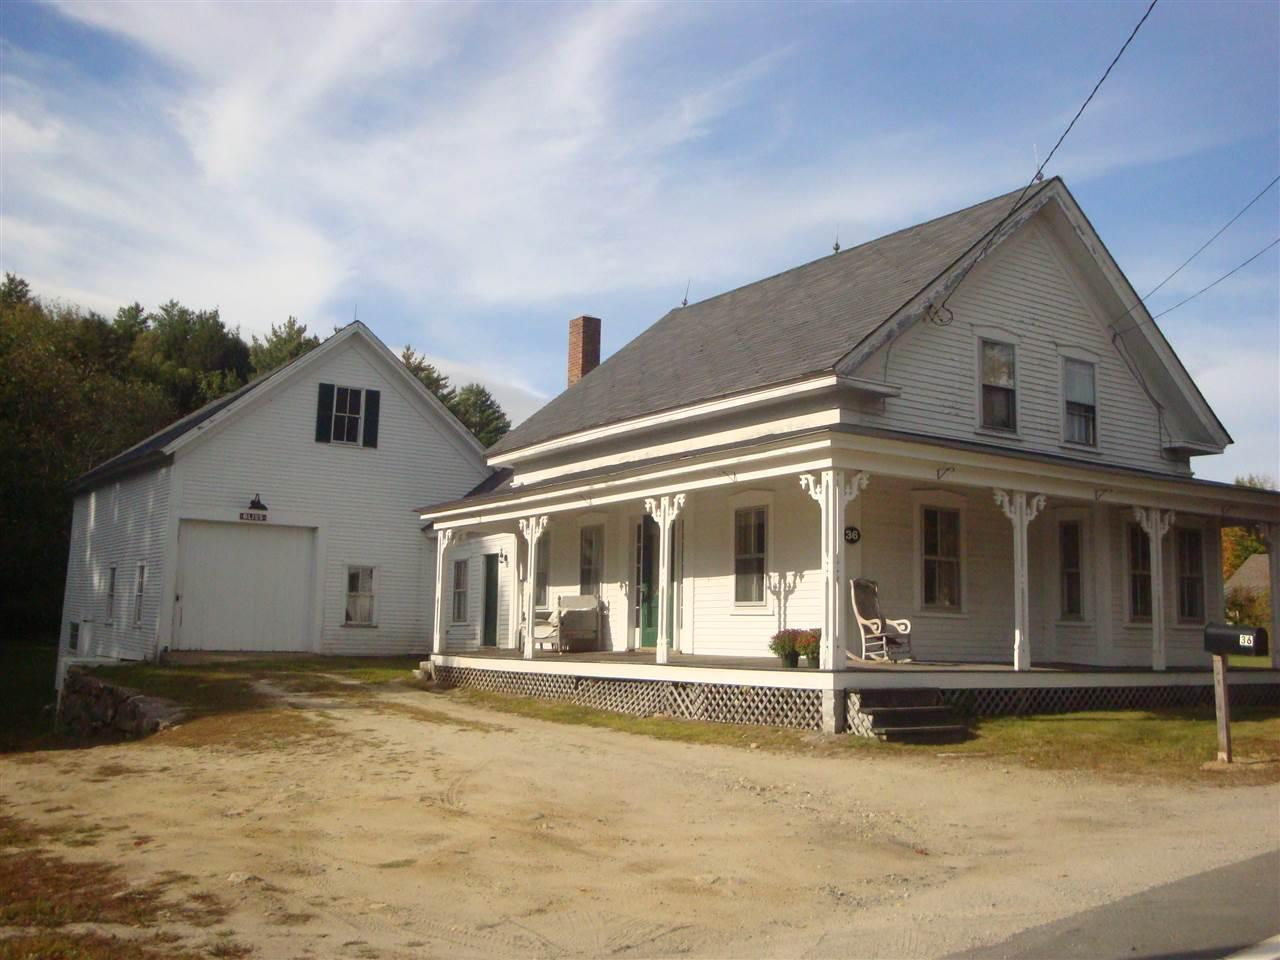 36 Nh Route 104 Danbury Nh Mls 4619743 Better Homes And Gardens Real Estate